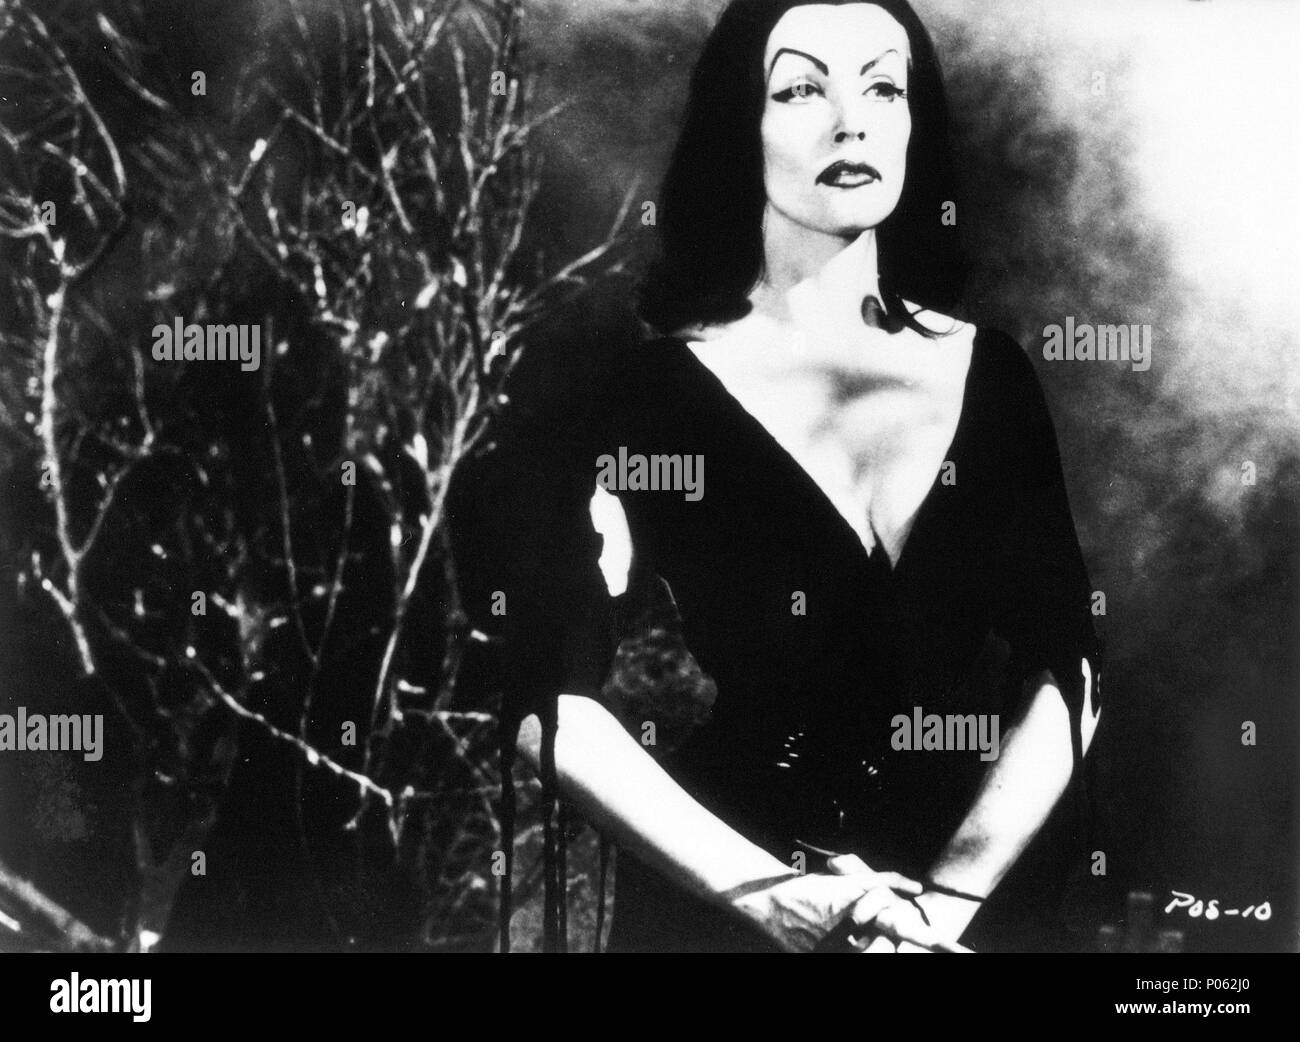 Original Film Title: PLAN 9 FROM OUTER SPACE.  English Title: PLAN 9 FROM OUTER SPACE.  Film Director: ED WOOD.  Year: 1959.  Stars: VAMPIRA (MAILA NURMI). Credit: REYNOLDS PICTURES INC. / Album - Stock Image